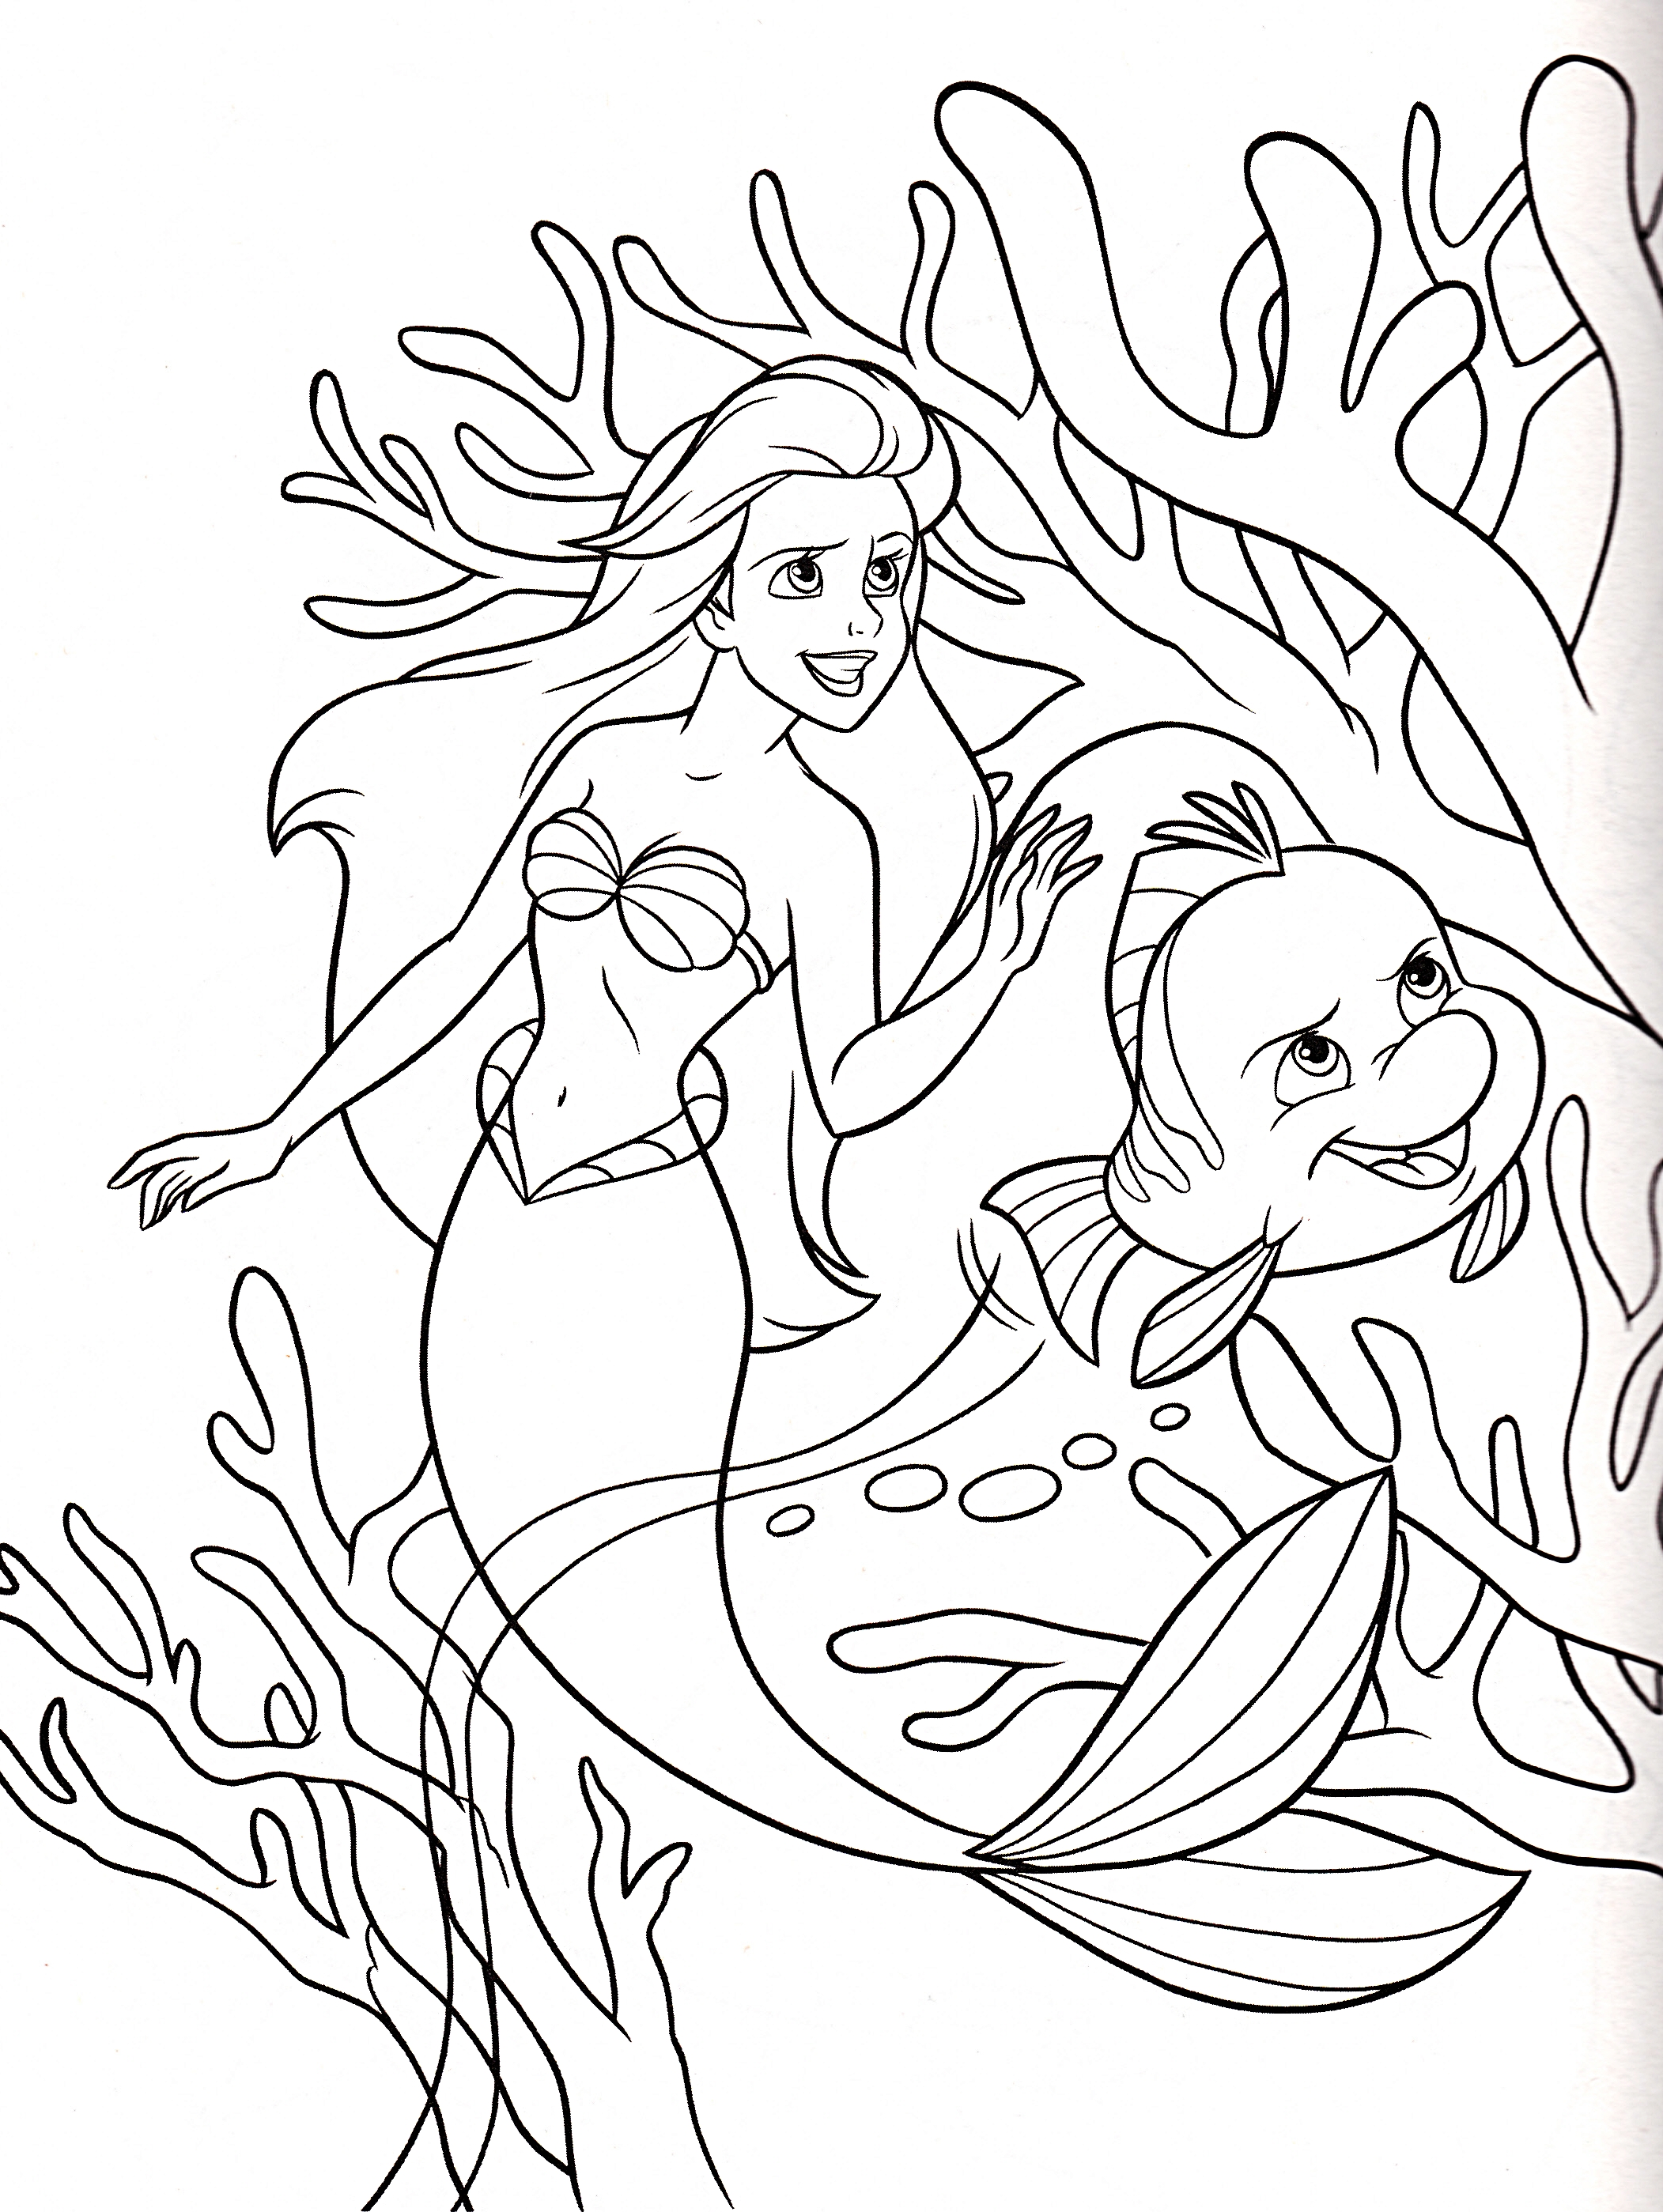 Disney Coloring Pages (25) | Coloring Kids